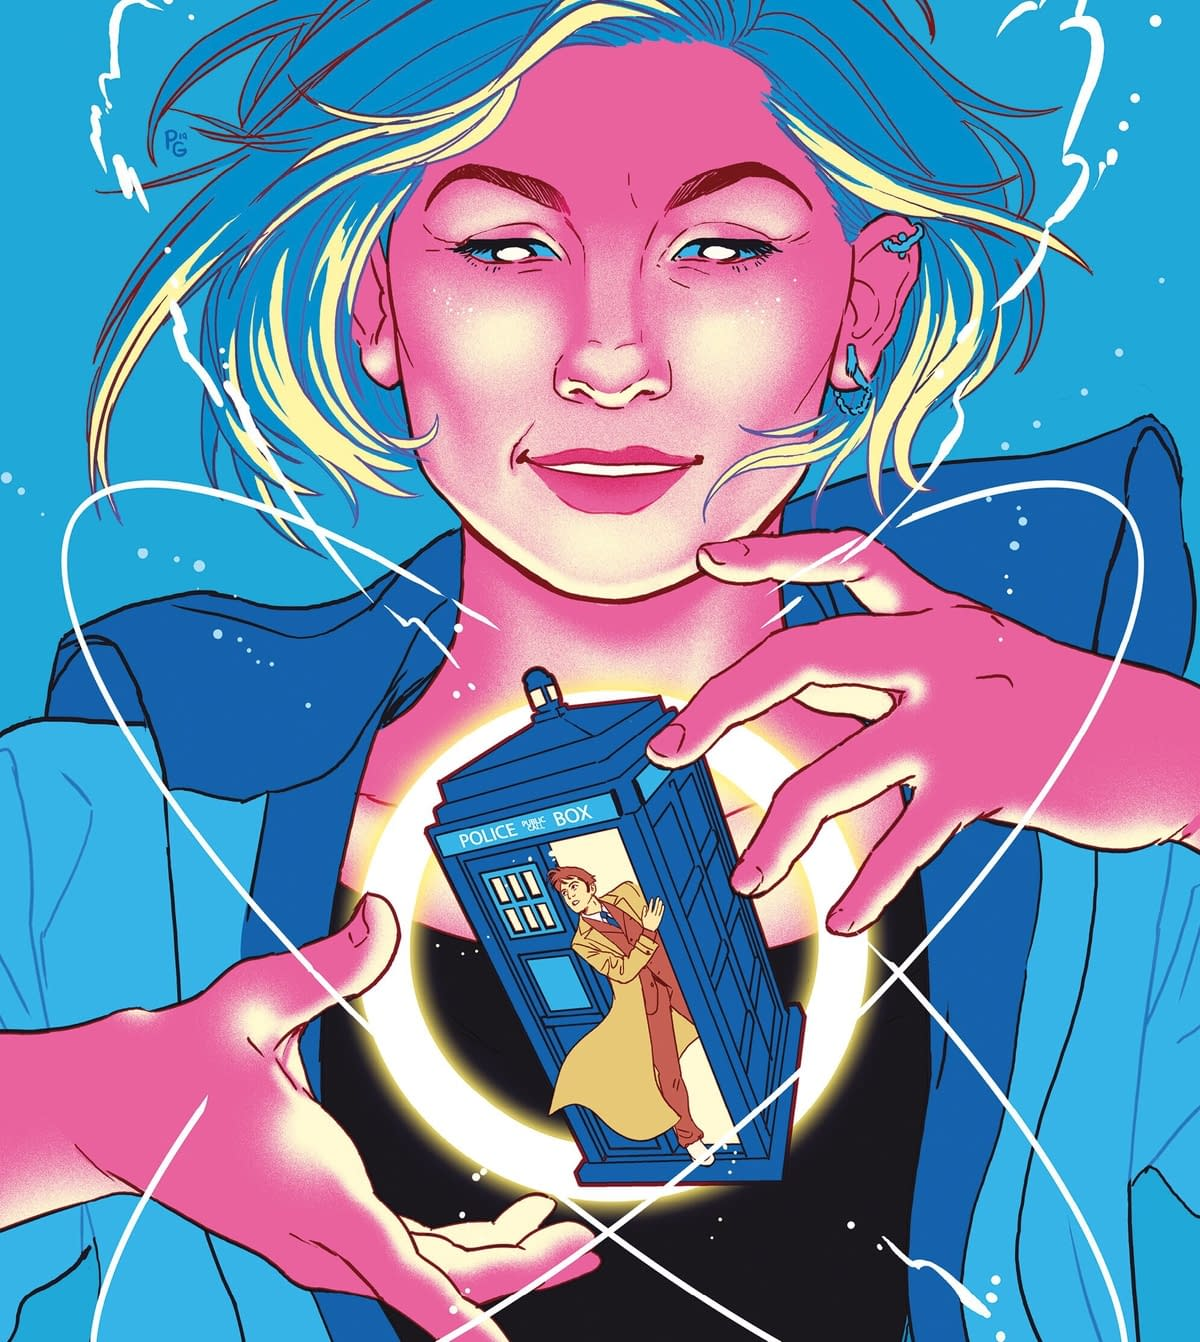 """REVIEW: Doctor Who The Thirteenth Doctor Season Two #1 -- """"The Tenth And Thirteenth Doctors Never Interact In The Pages Of This Issue""""REVIEW: Doctor Who The Thirteenth Doctor Season Two #1 -- """"The Tenth And Thirteenth Doctors Never Interact In The Pages Of This Issue"""""""